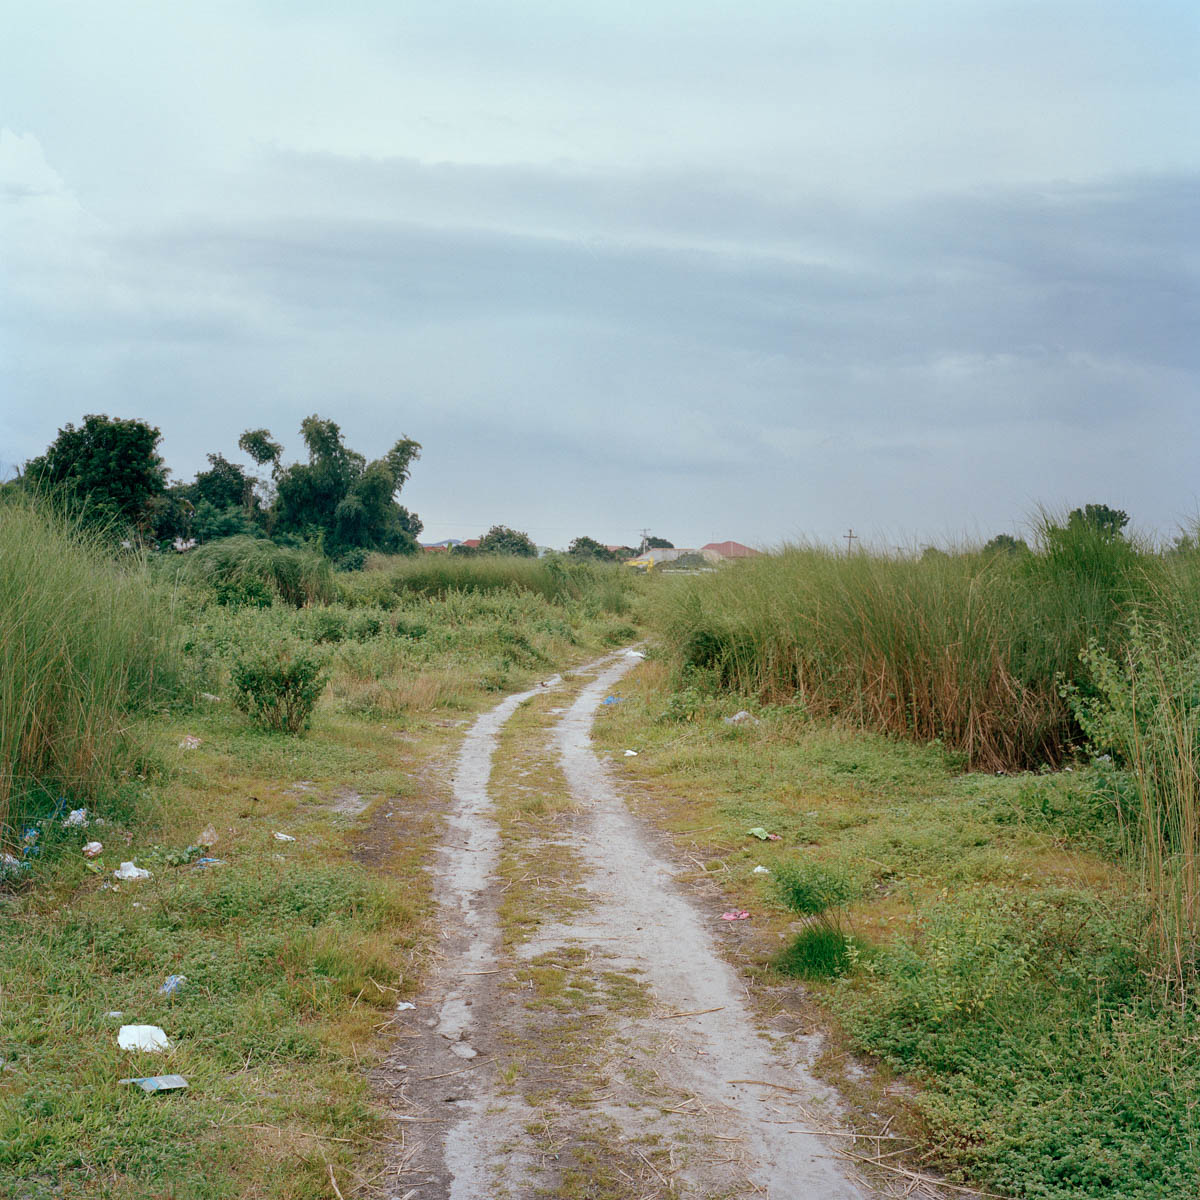 """Dirt path - Dirt path leading to barangay Cutud Northville. Angeles City, Philippines, August 2014. - Copyright © © S. Borcard - N. Metraux - Angeles - Central Luzon - Philippines - <A href=""""https://maps.google.com/?ll=15.168055,120.586388&z=16"""" target=""""_blank"""">(Map Dirt path)</A>"""